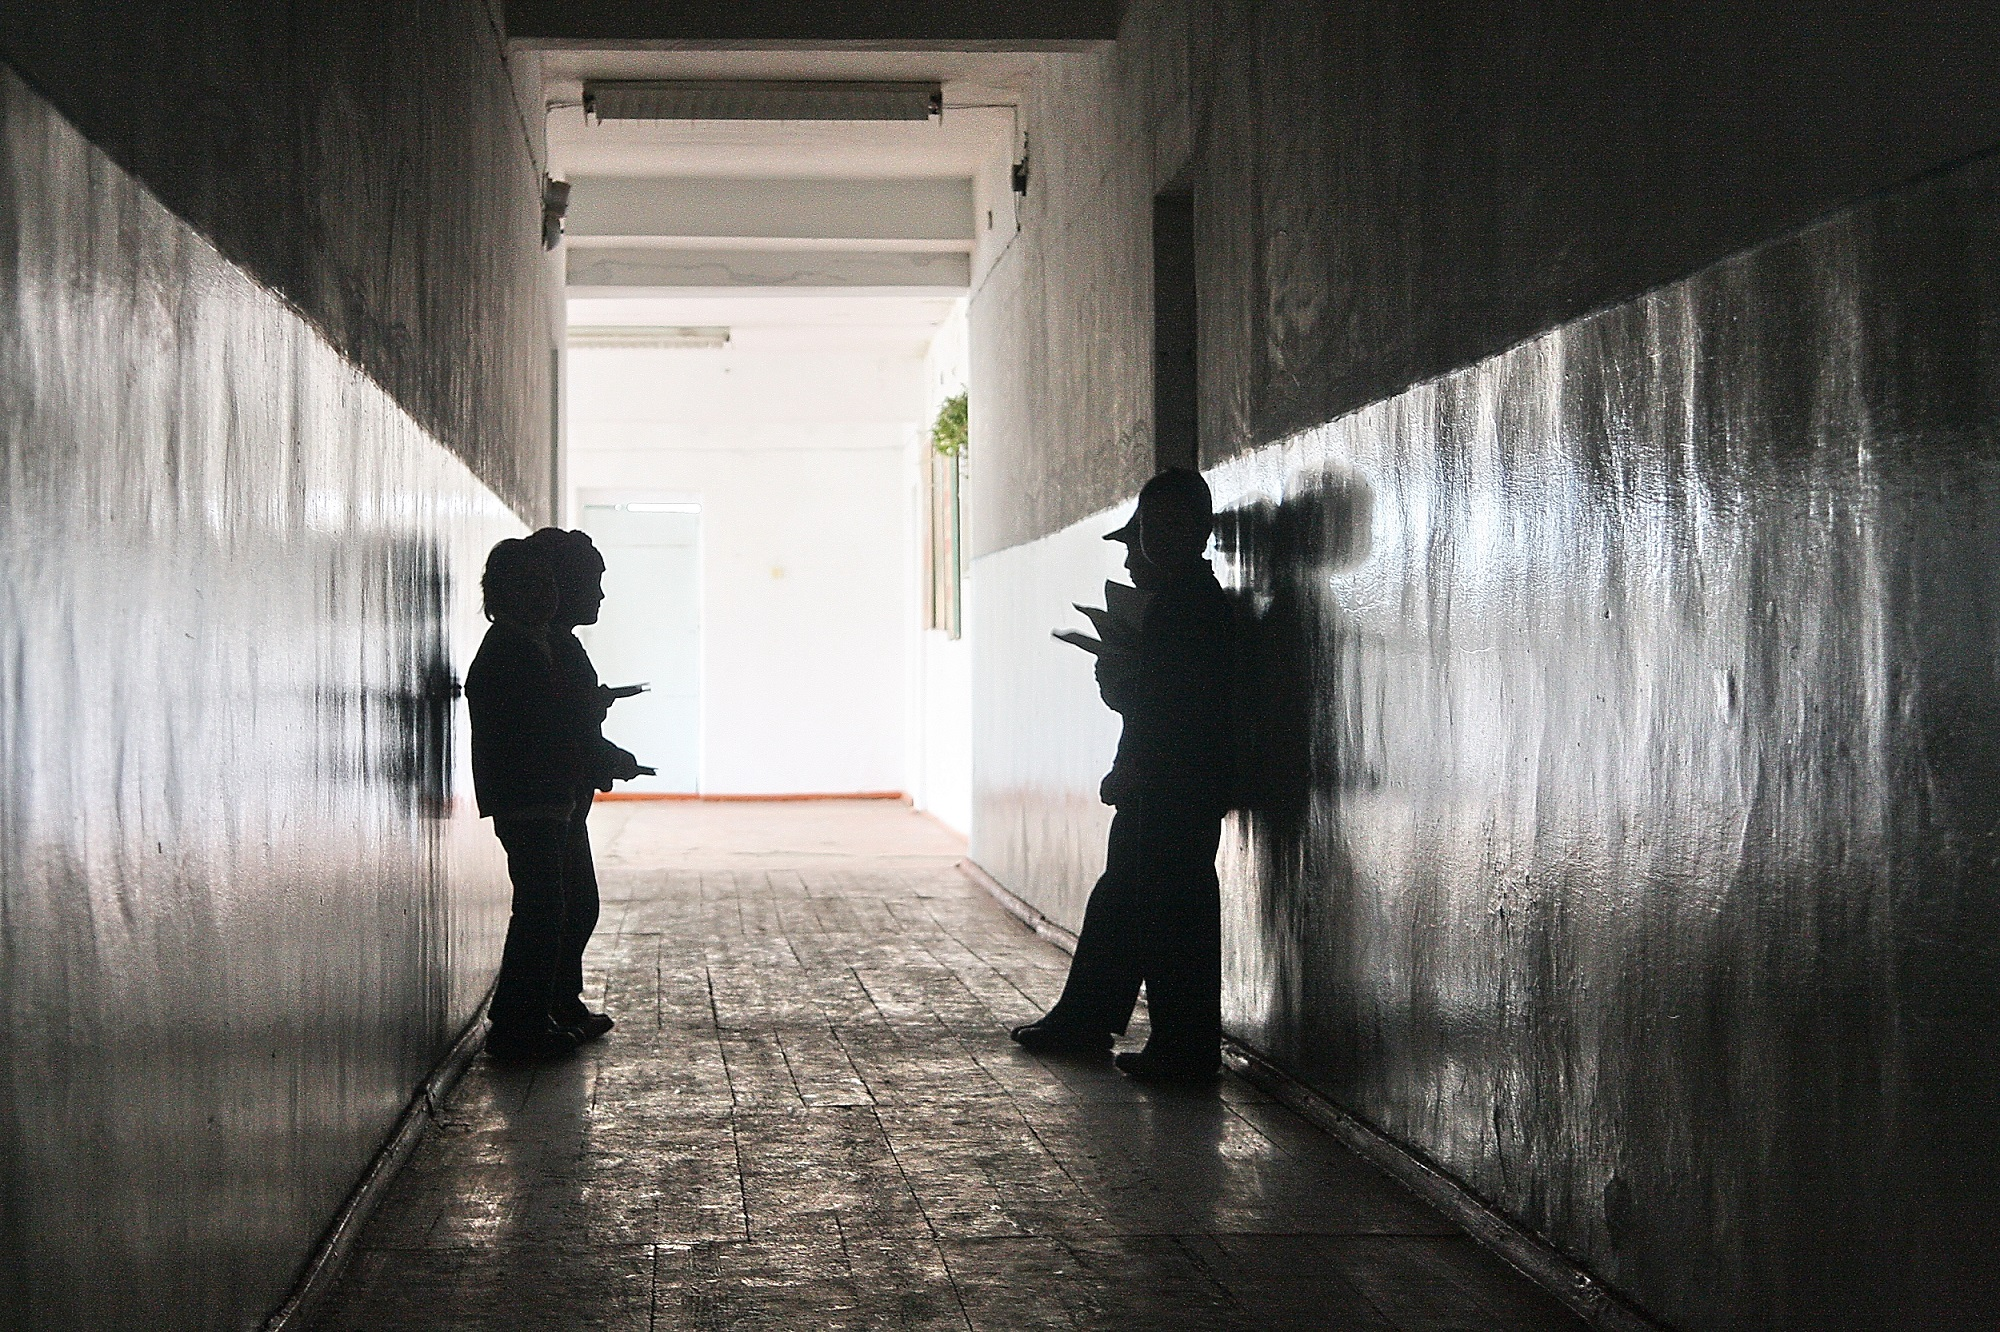 Some children in silhouette on either side of a dark passageway.